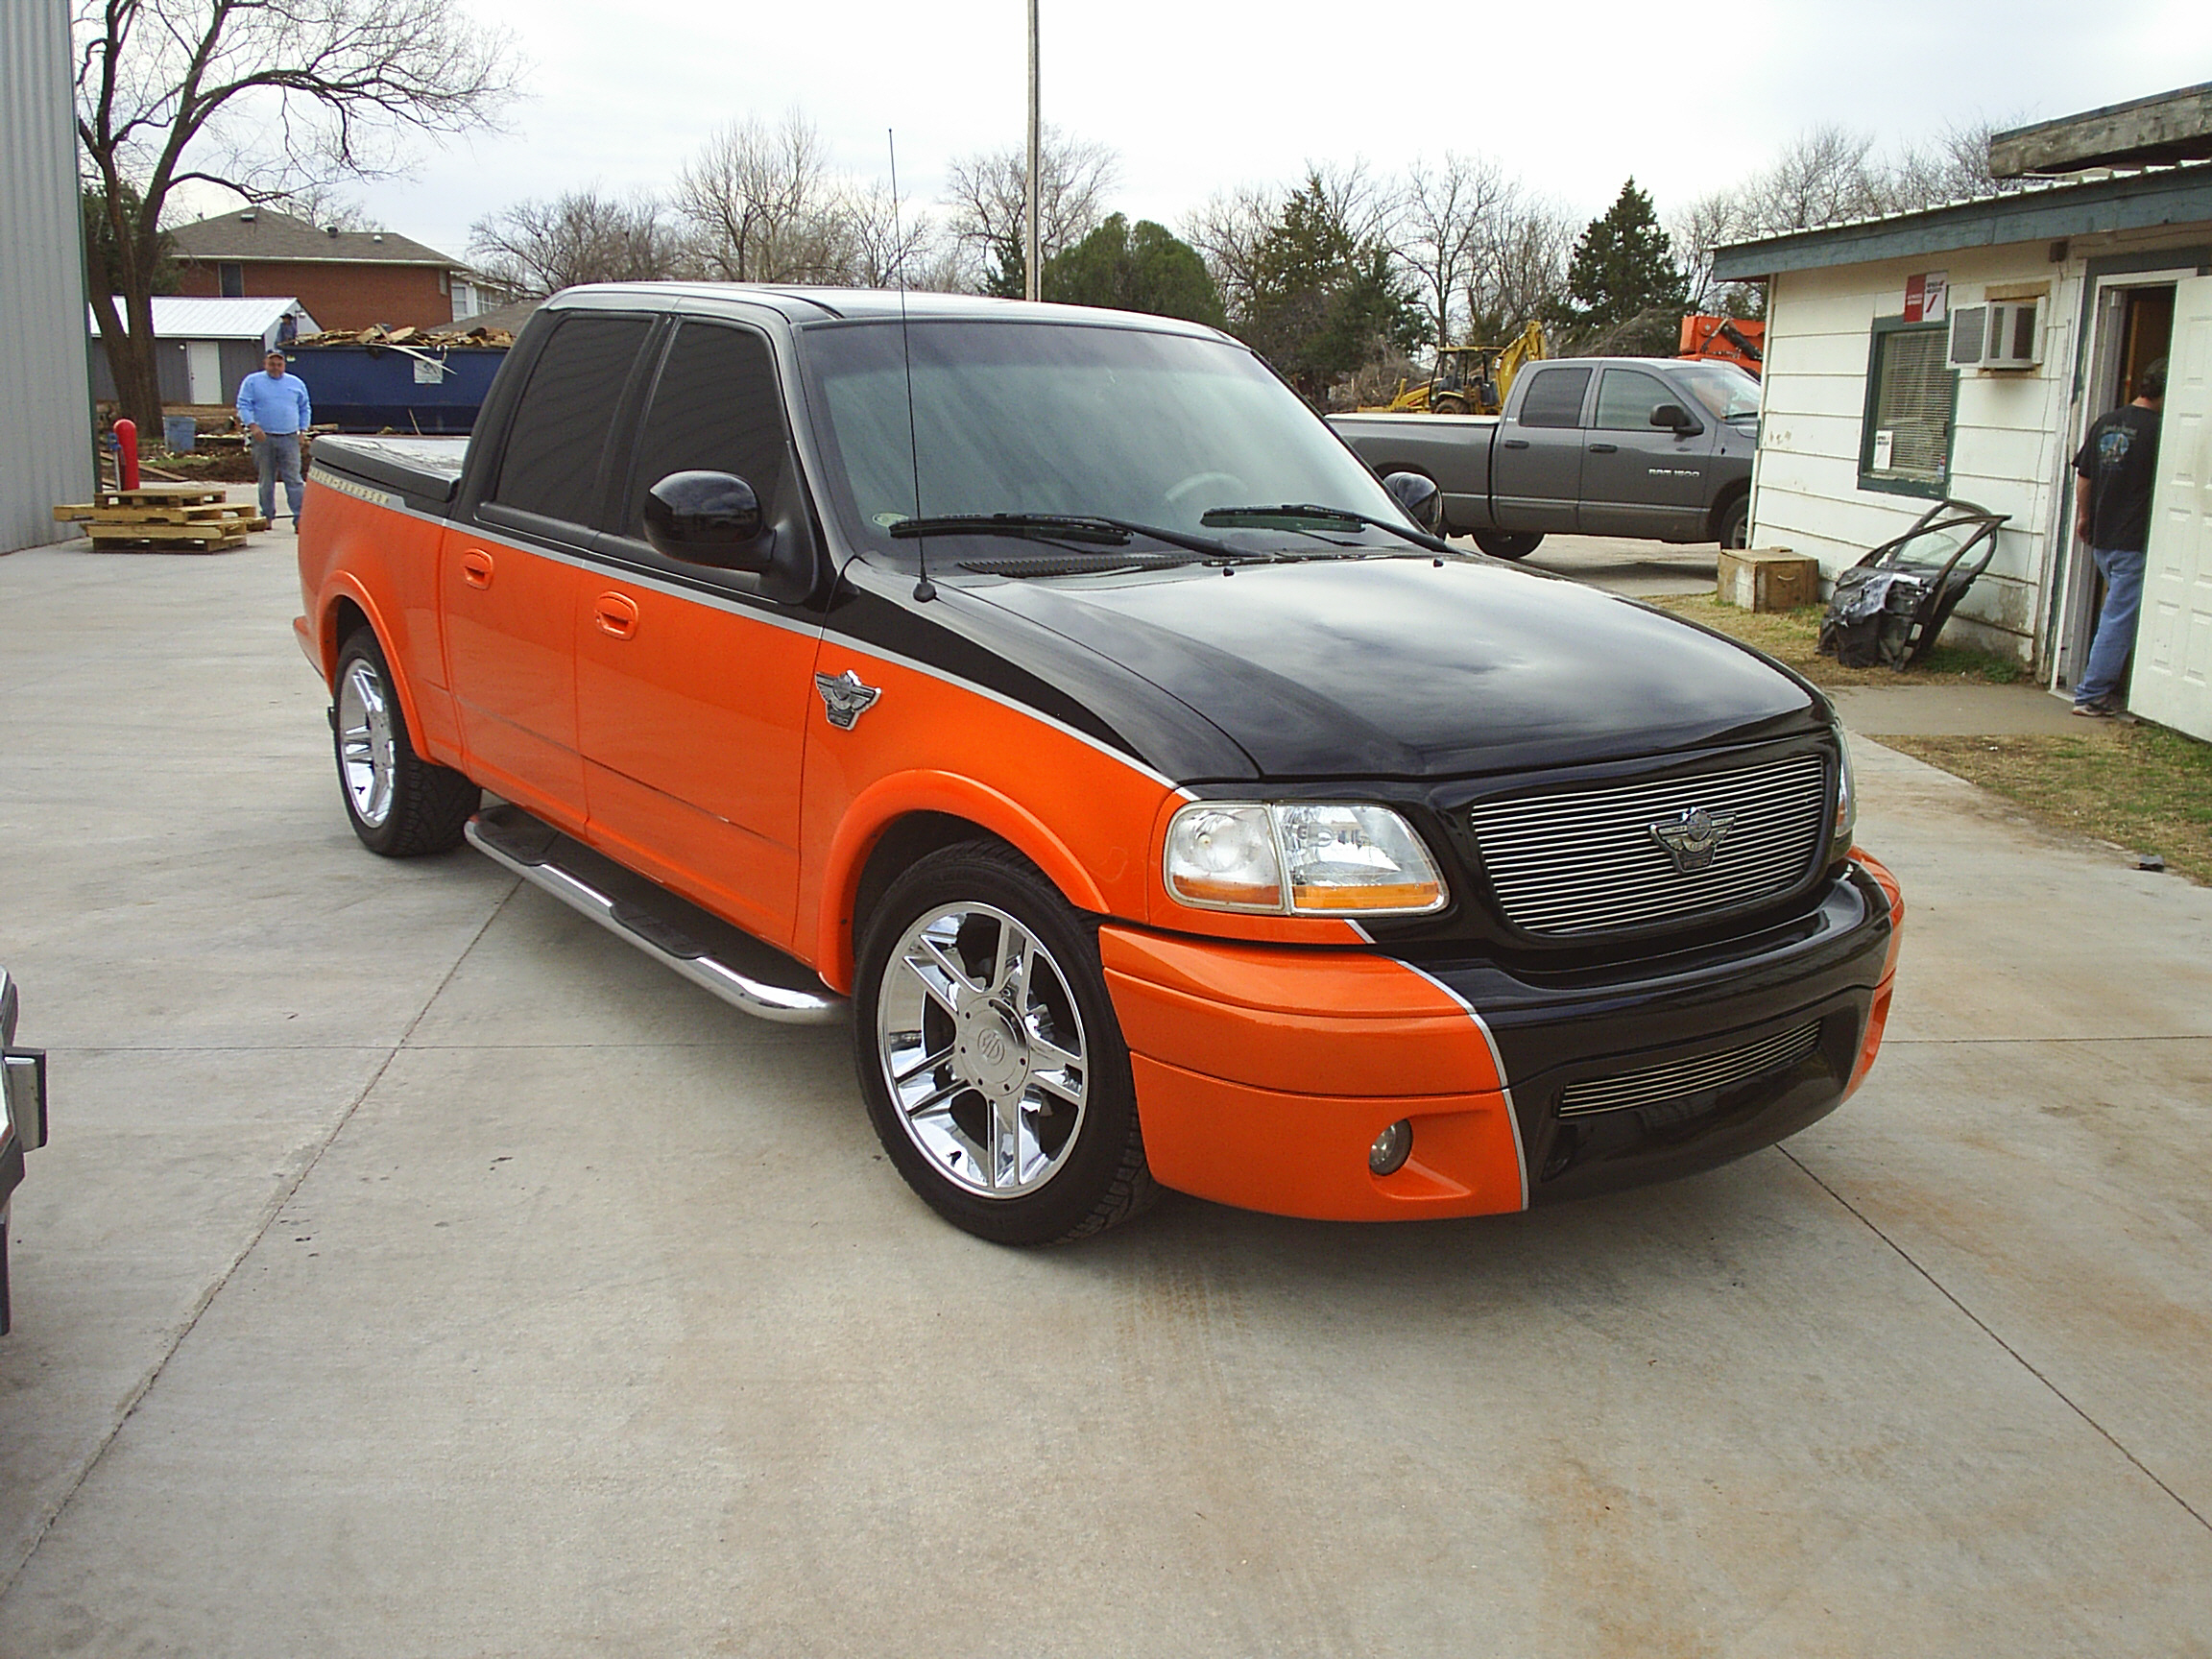 Custom two-tone Truck by Body Worx of Guthrie